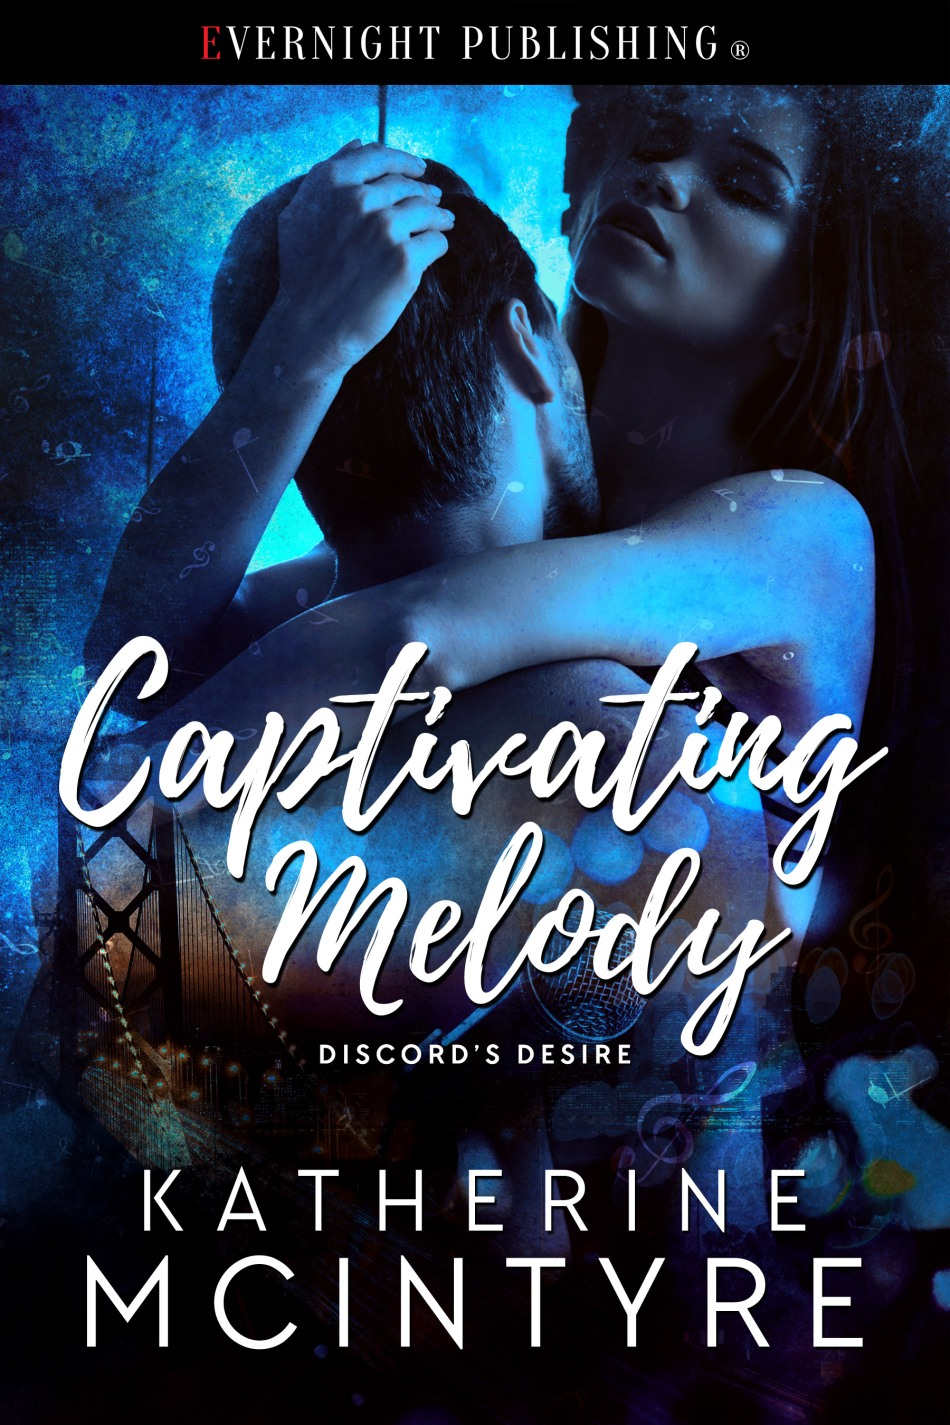 Captivating-Melody-evernightpublishing-JUNE2018-eBook.jpg